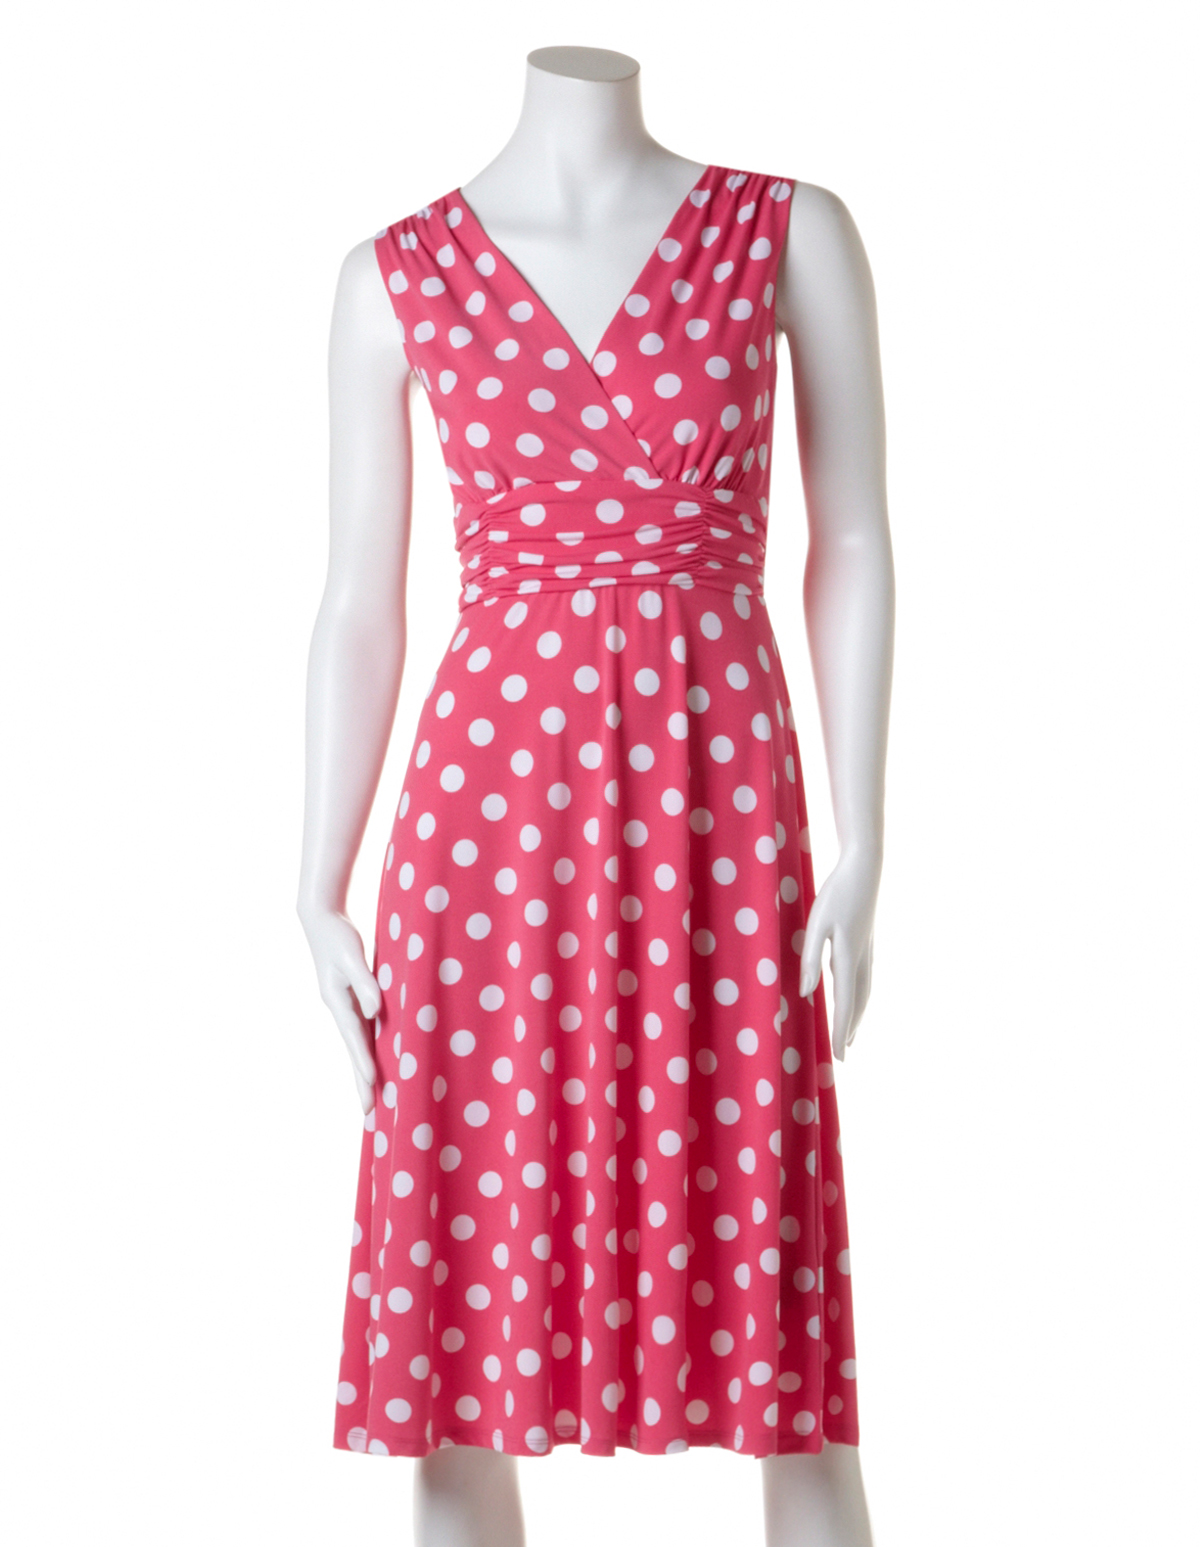 Pink Polka Dot Fit and Flare Dress  Cleo